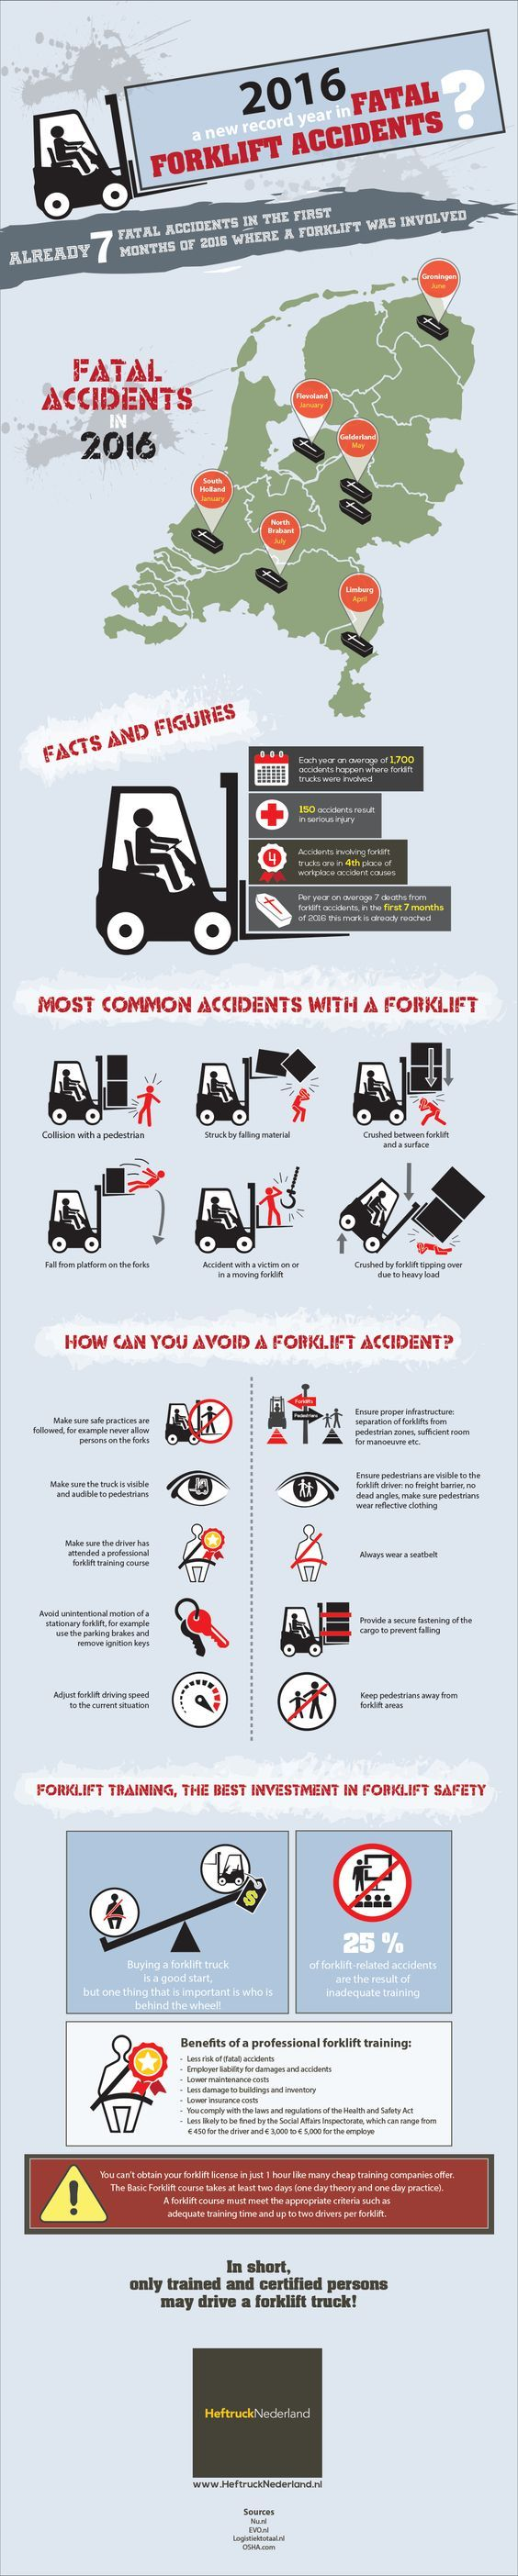 Best 25 online safety training ideas on pinterest home alone 2016 fatal forklift accidents this is an infographic on the fatal forklift accidents in the year 2016 each year an average of 1700 accidents happen xflitez Choice Image